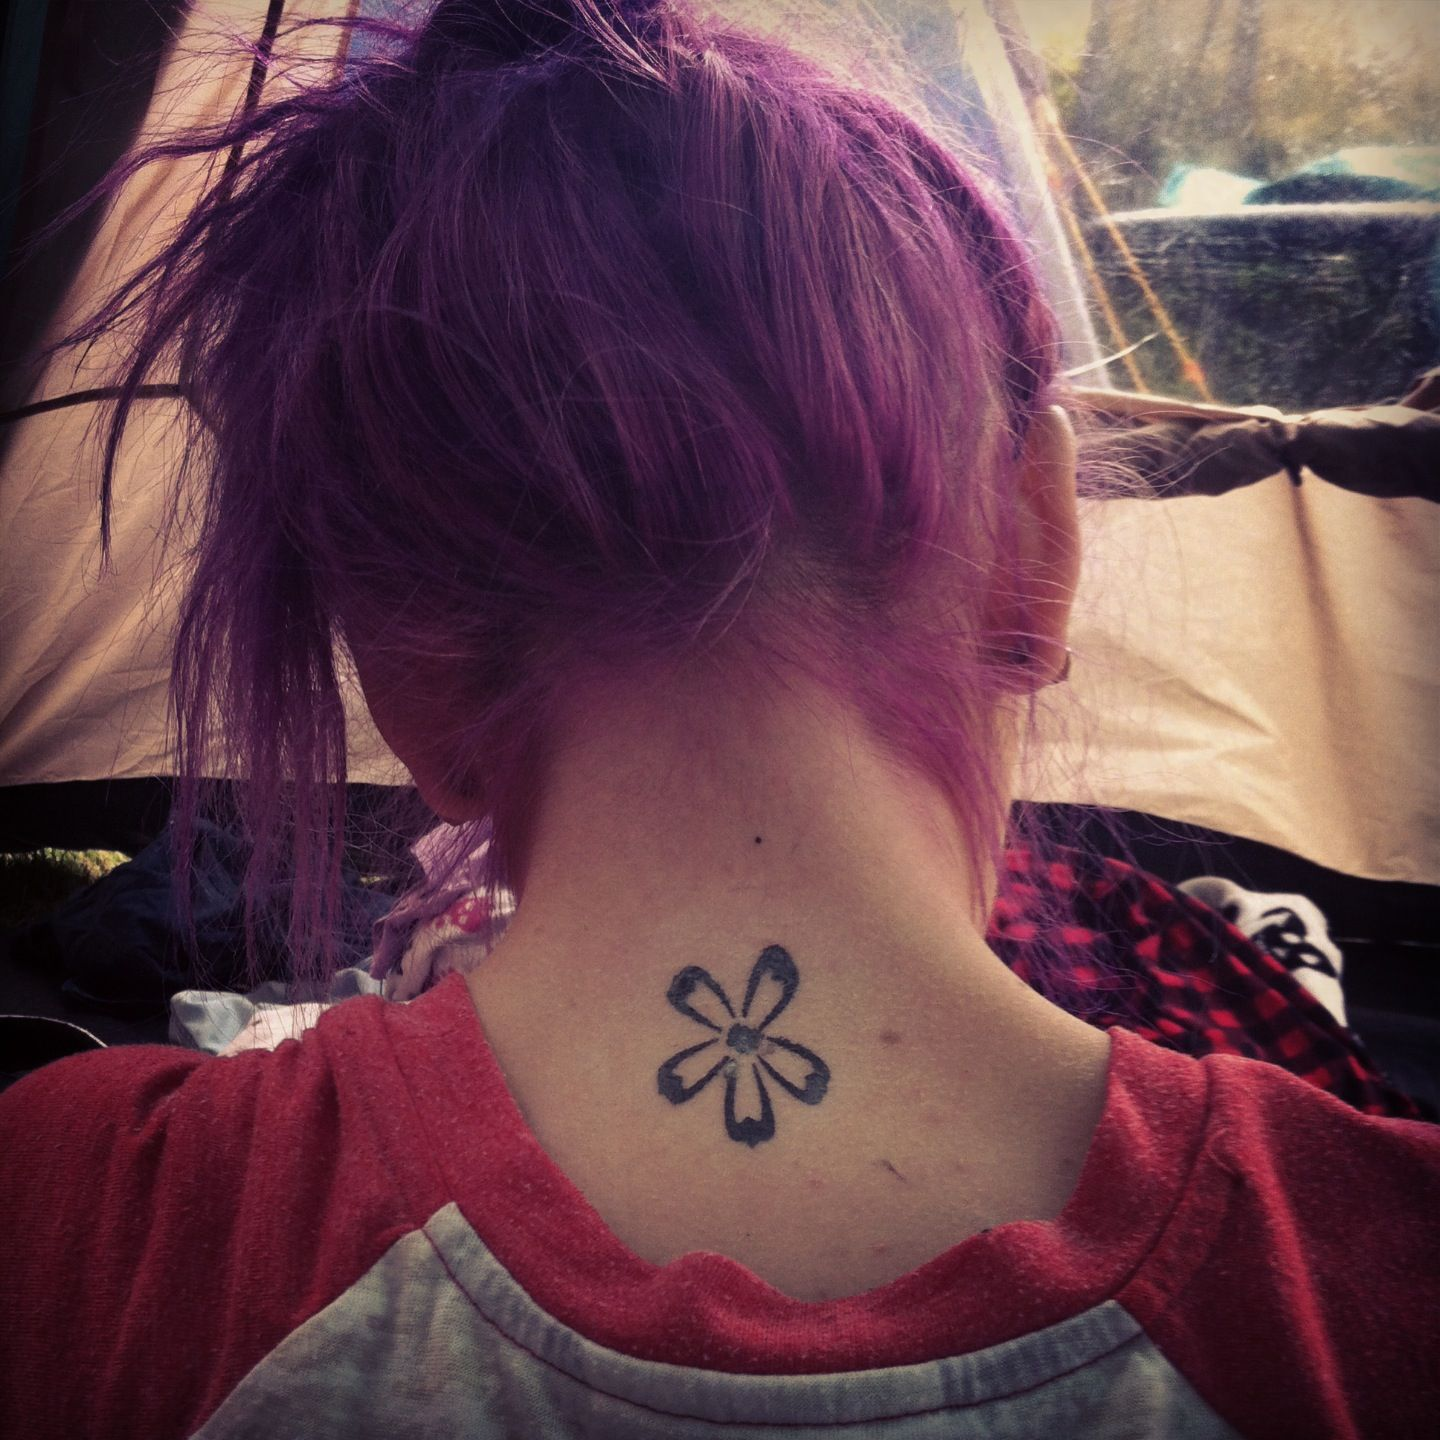 Cute girly tattoo flower tattoo small tattoo hipster purple hair